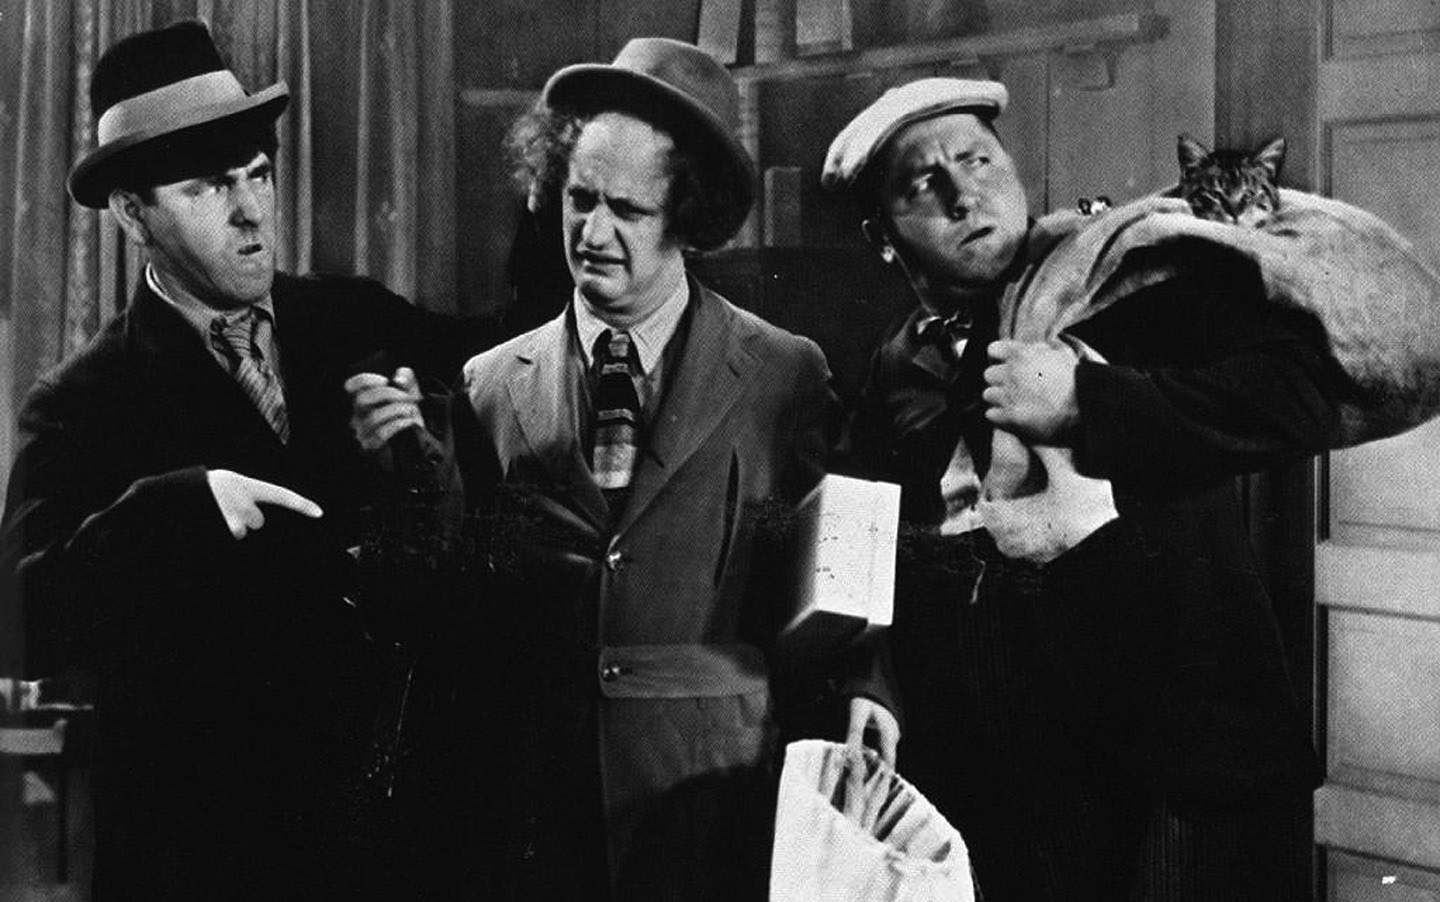 The Three Stooges Wallpaper And Background Image 1440x902